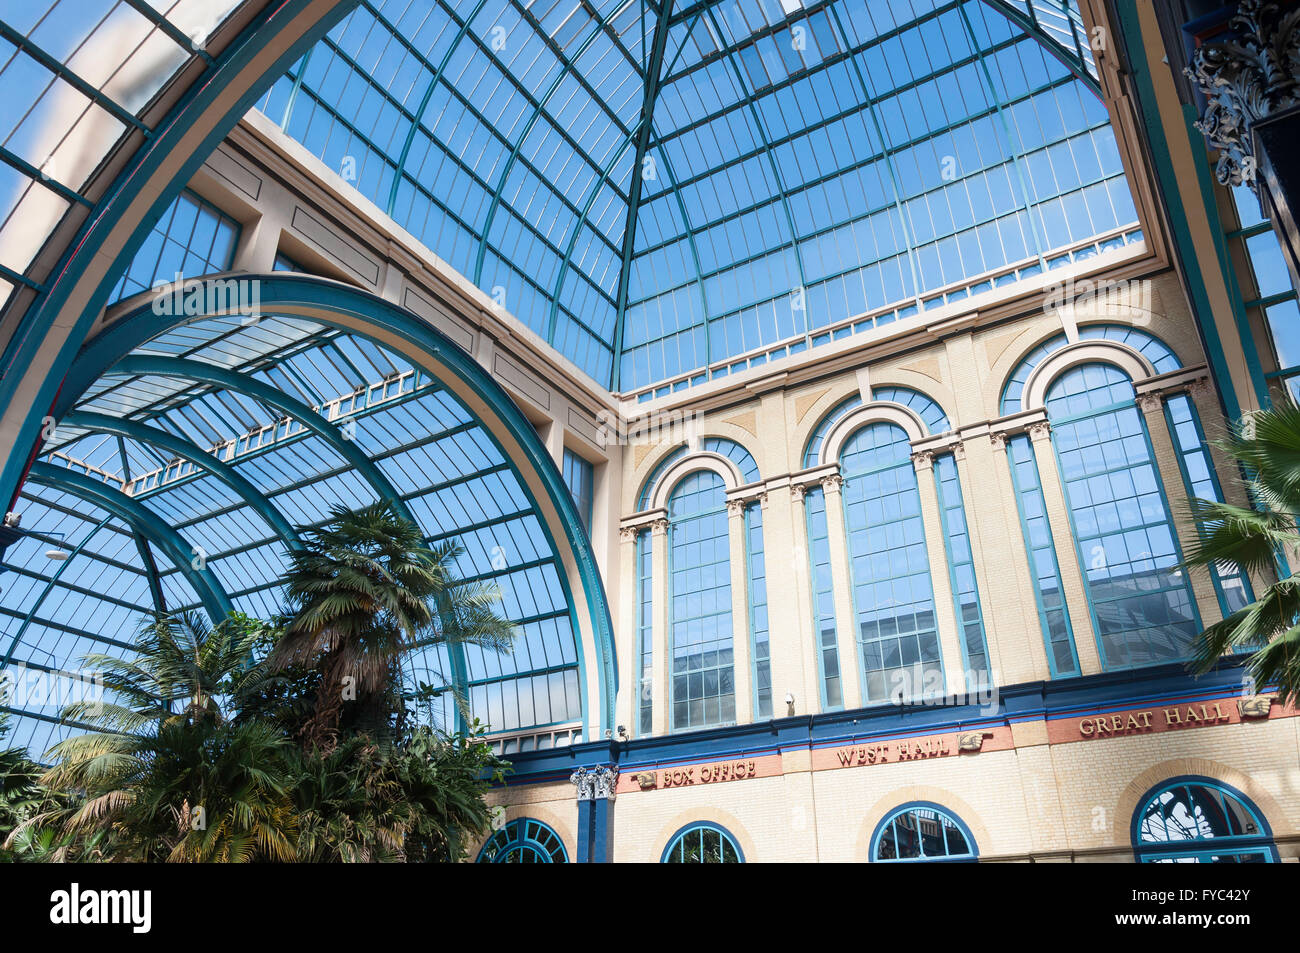 Palm Court at Alexandra Palace, London Borough of Haringey, Greater London, England, United Kingdom - Stock Image